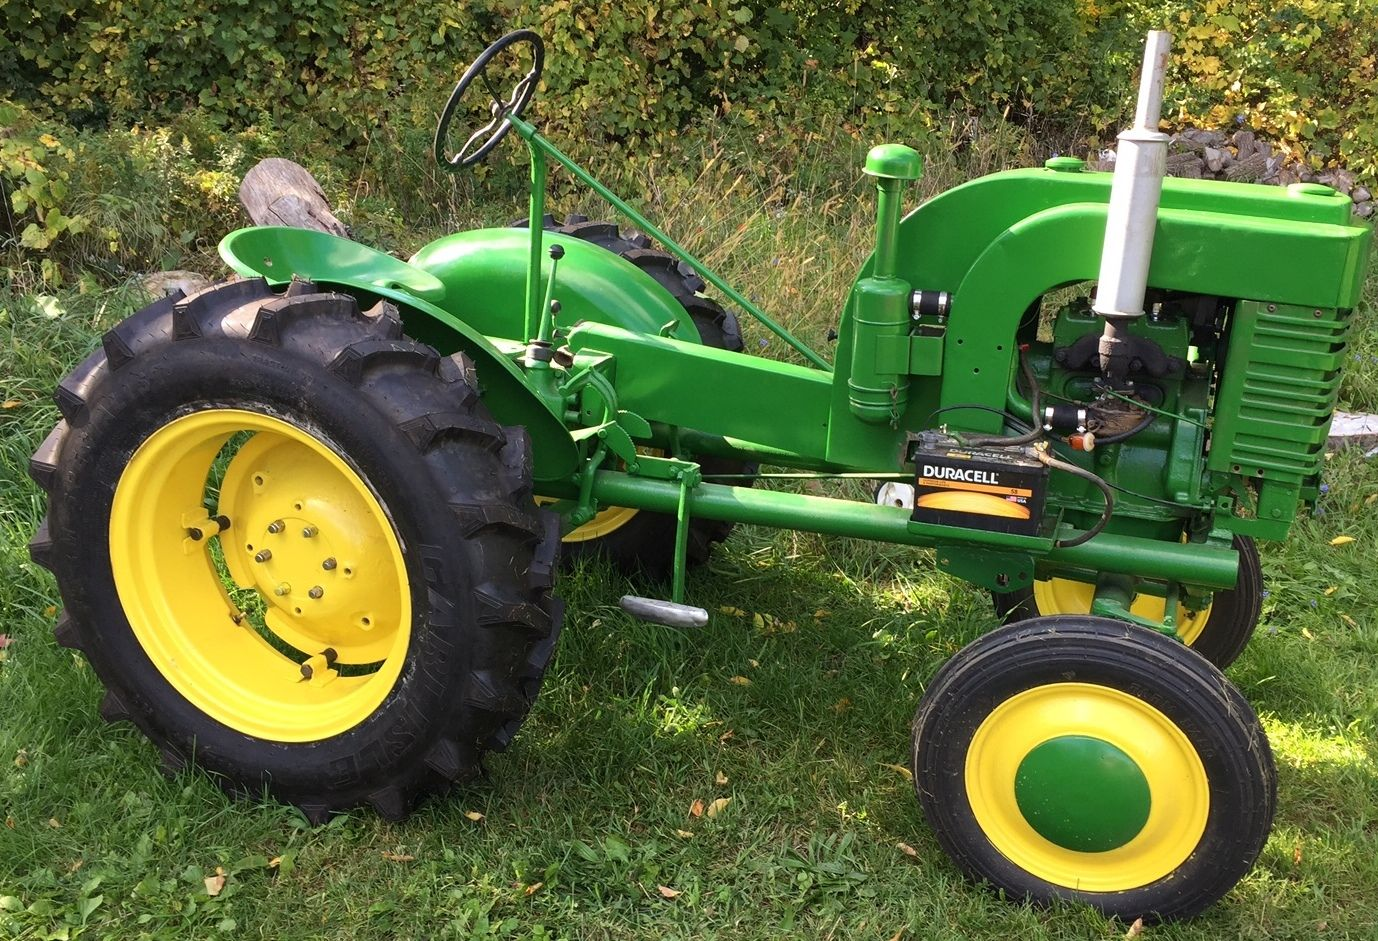 1941 JOHN DEERE Model L TRACTOR for Sale - Motorcycle Memories